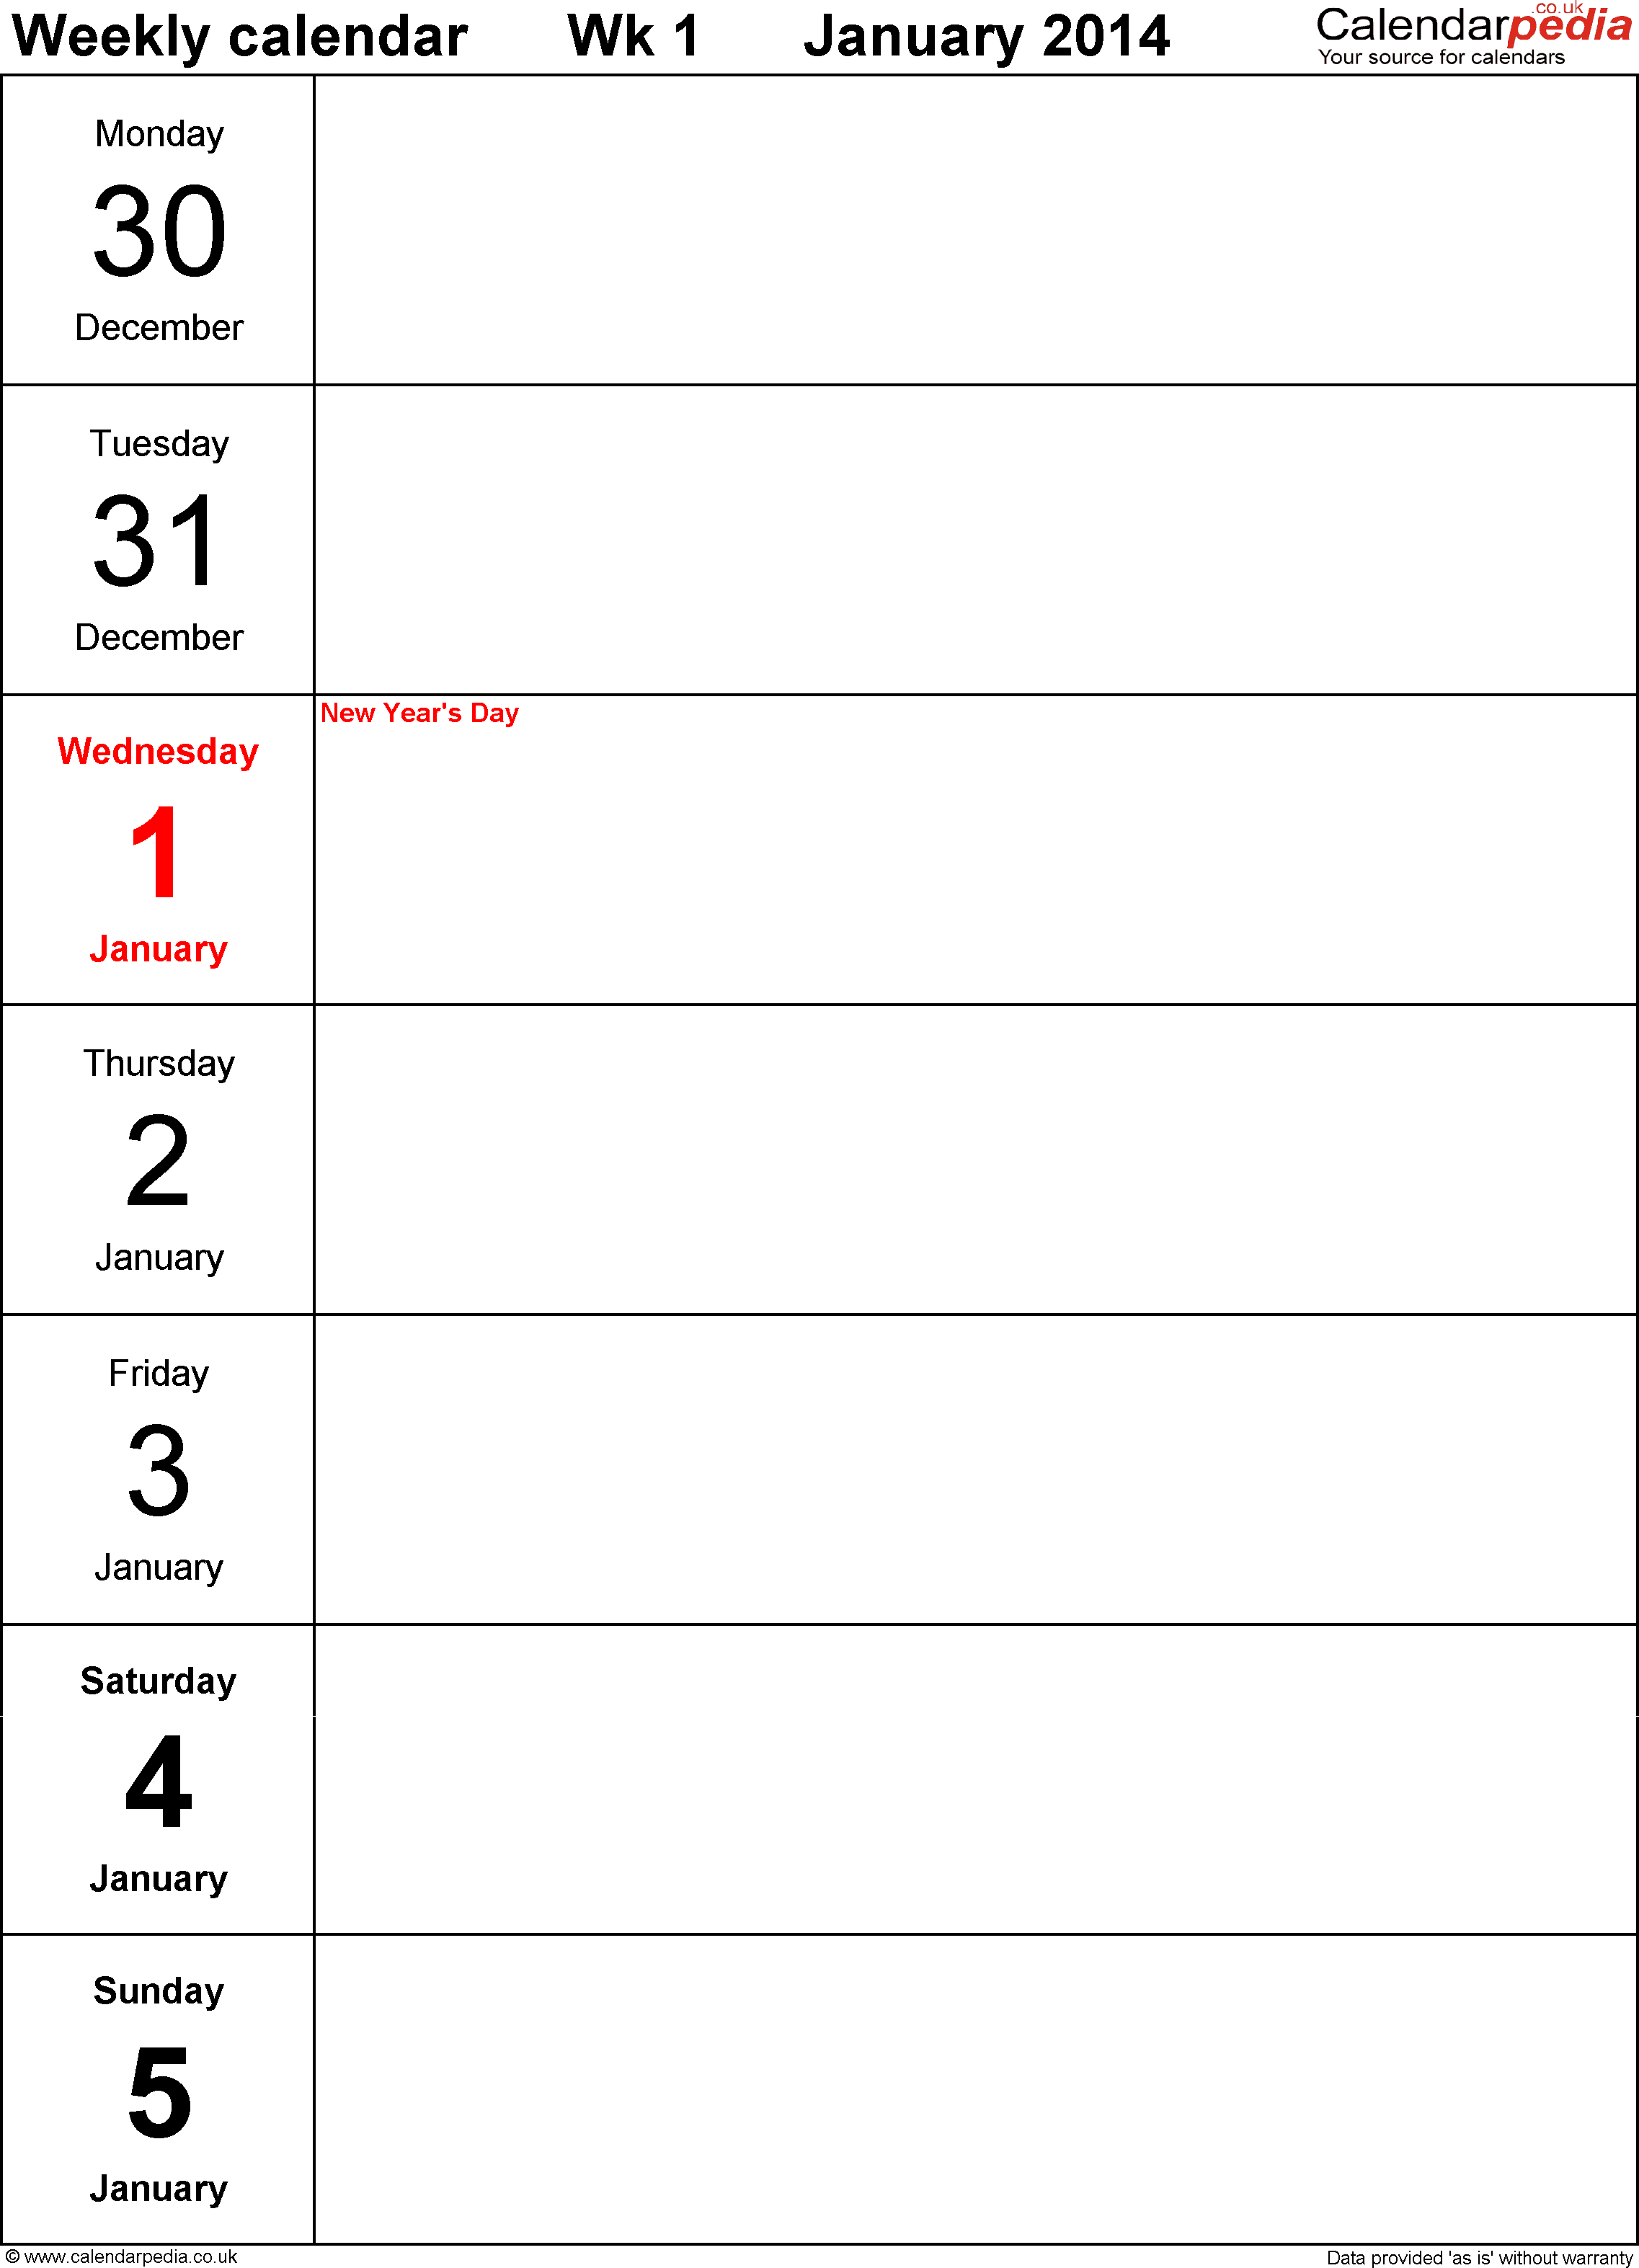 Download Word template 4: Weekly calendar 2014, portrait orientation, days vertically, 53 pages (1 calendar week on 1 page)